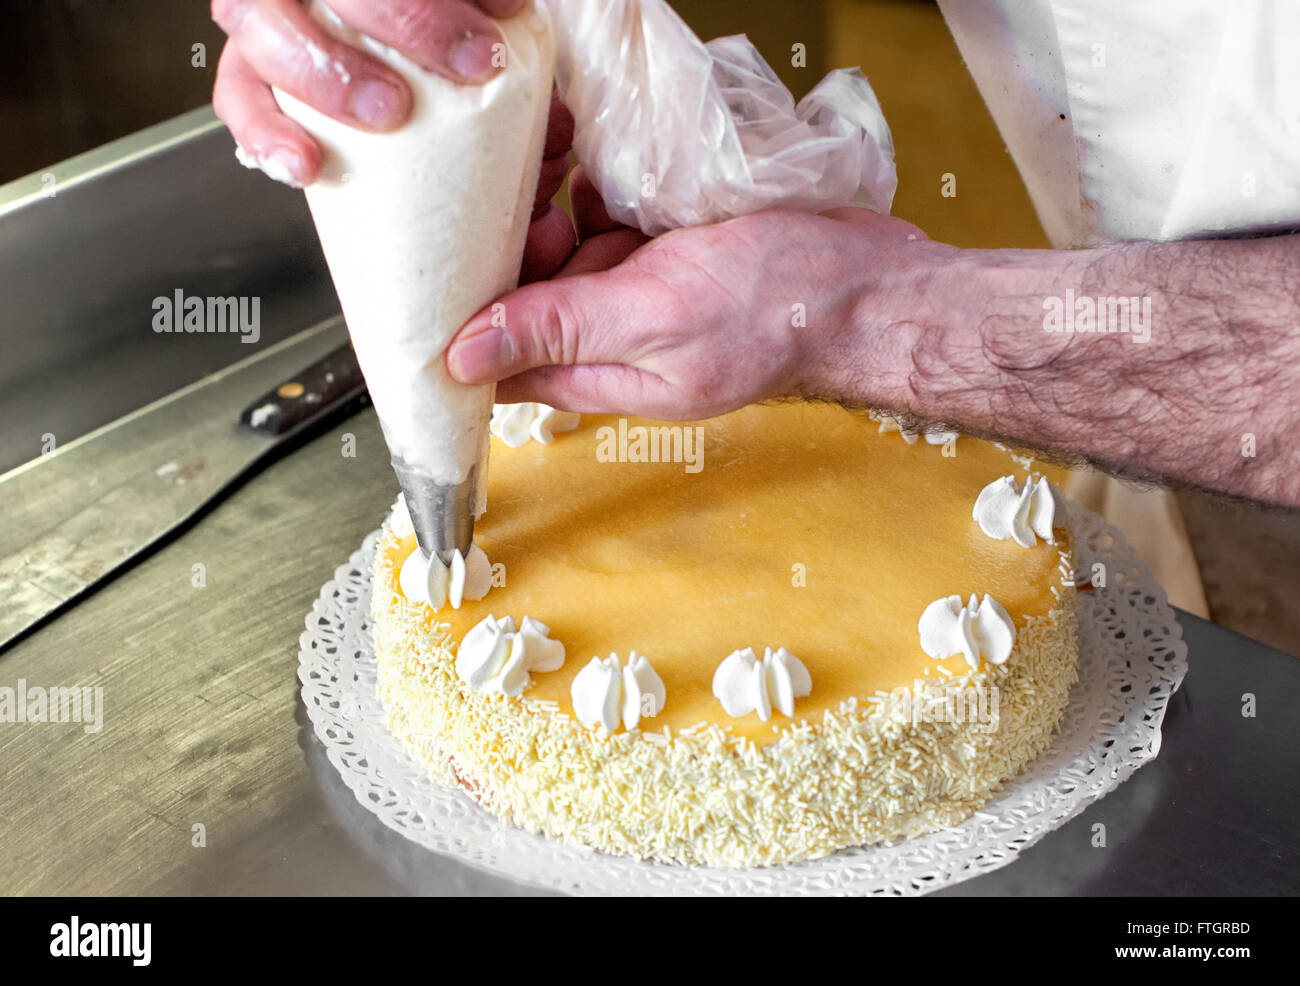 Baker piping cream decorations on to the top of a cake using a nozzle and bag, close up of his hands and the cake - Stock Image